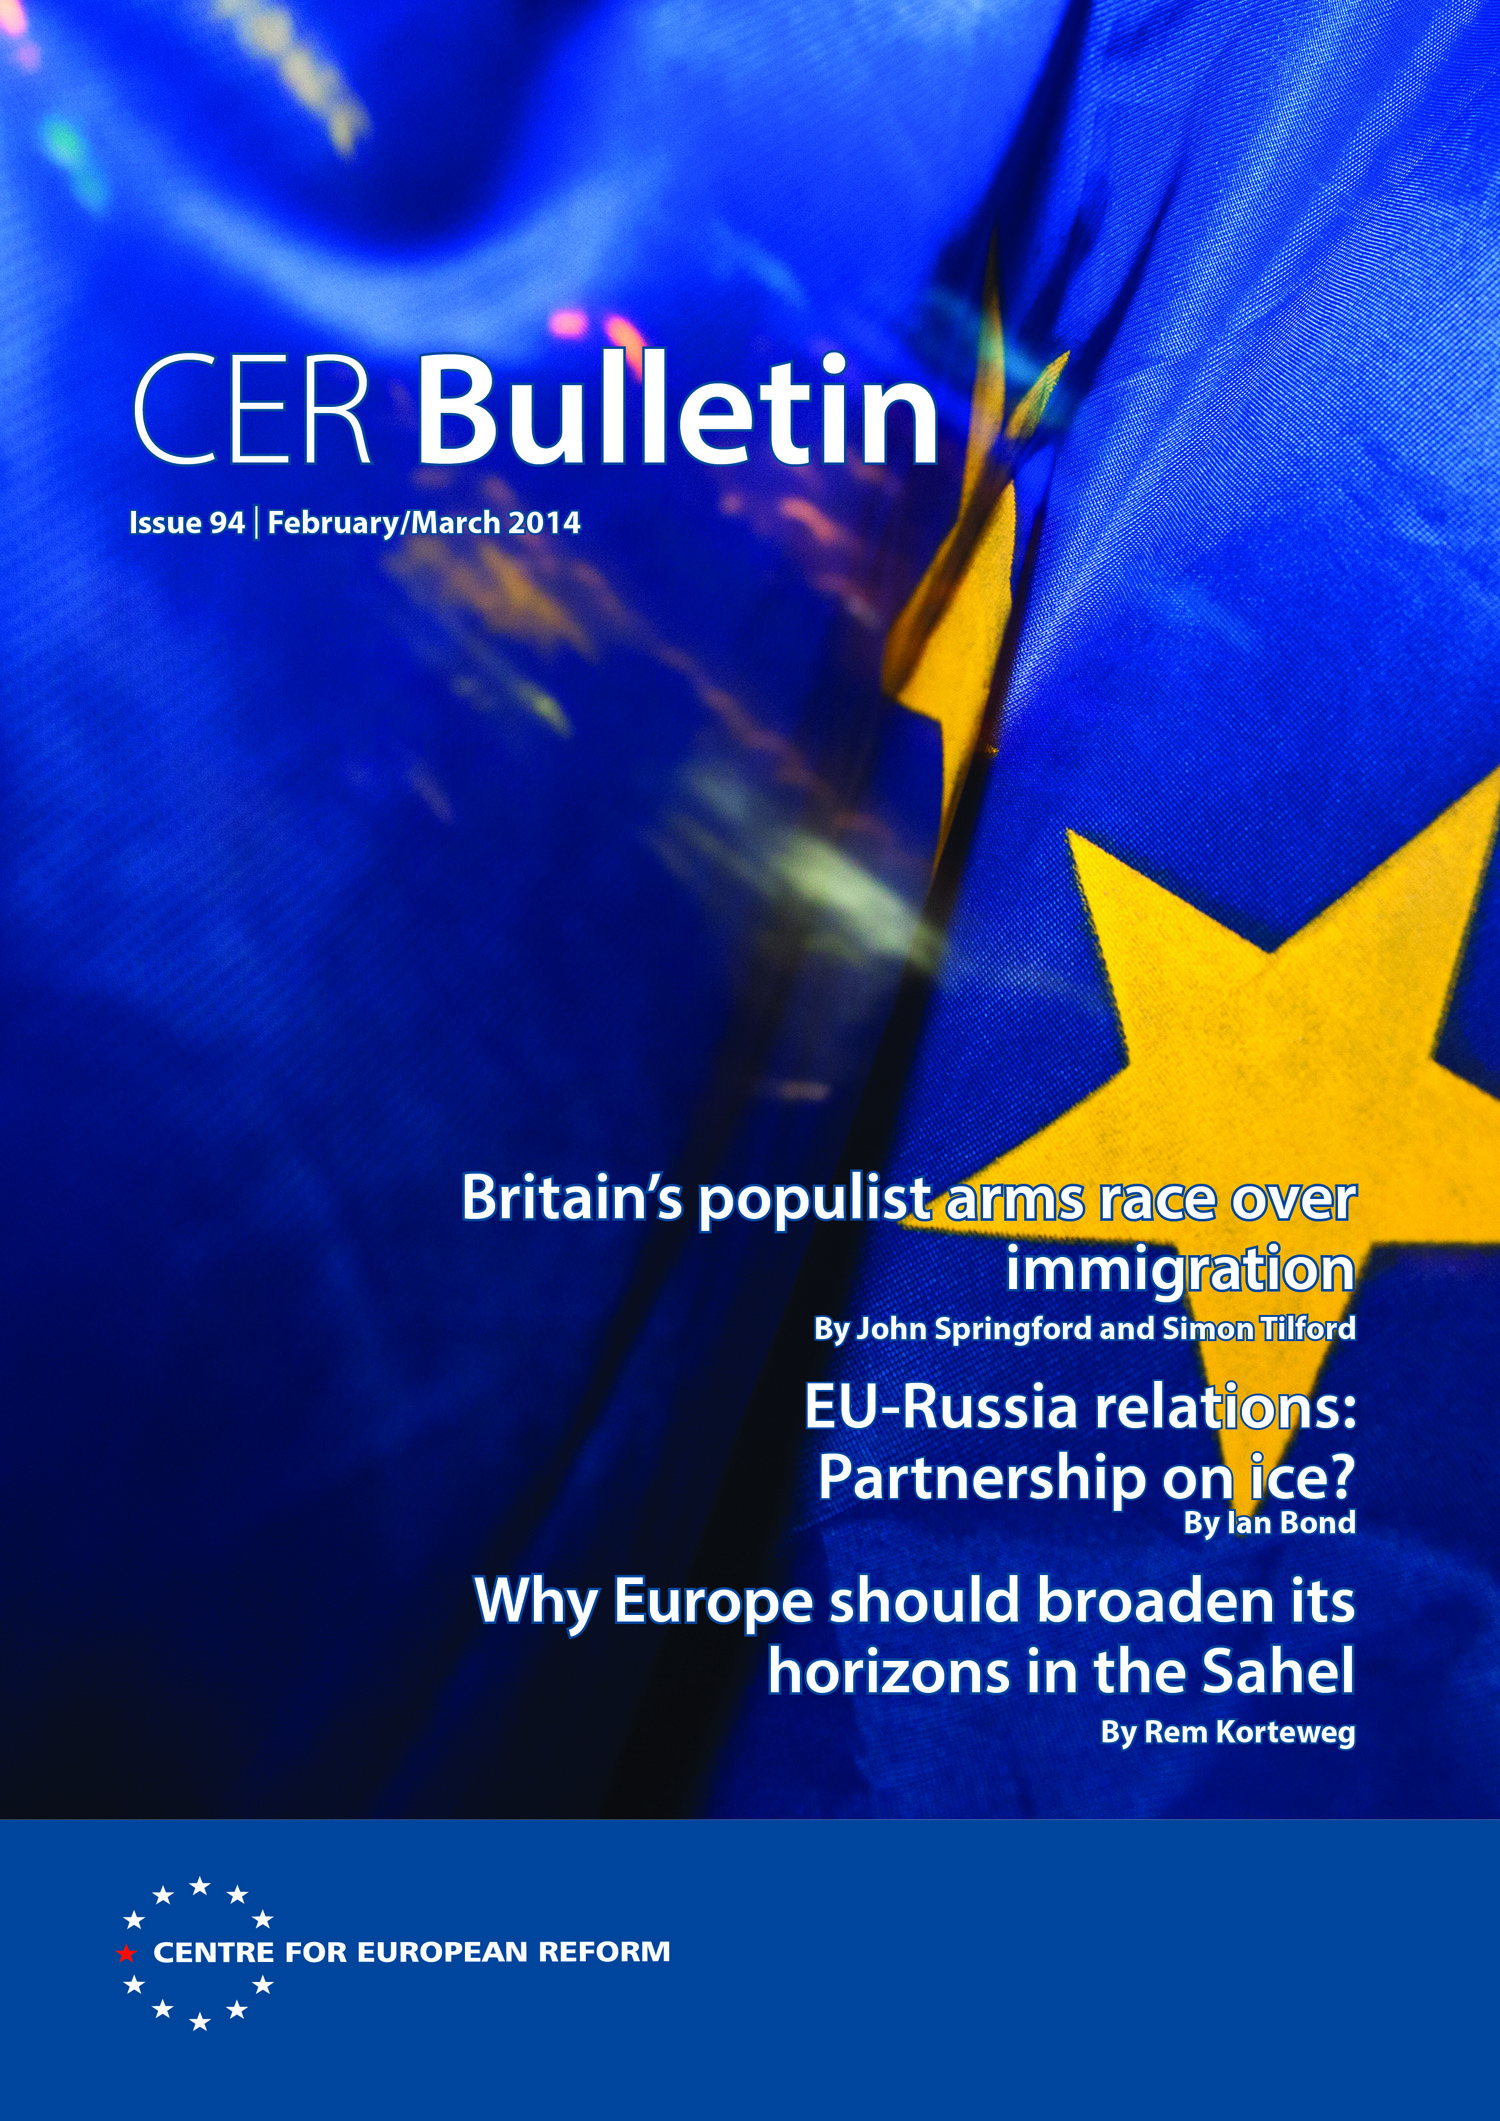 Bulletin issue 94 February/March 2014